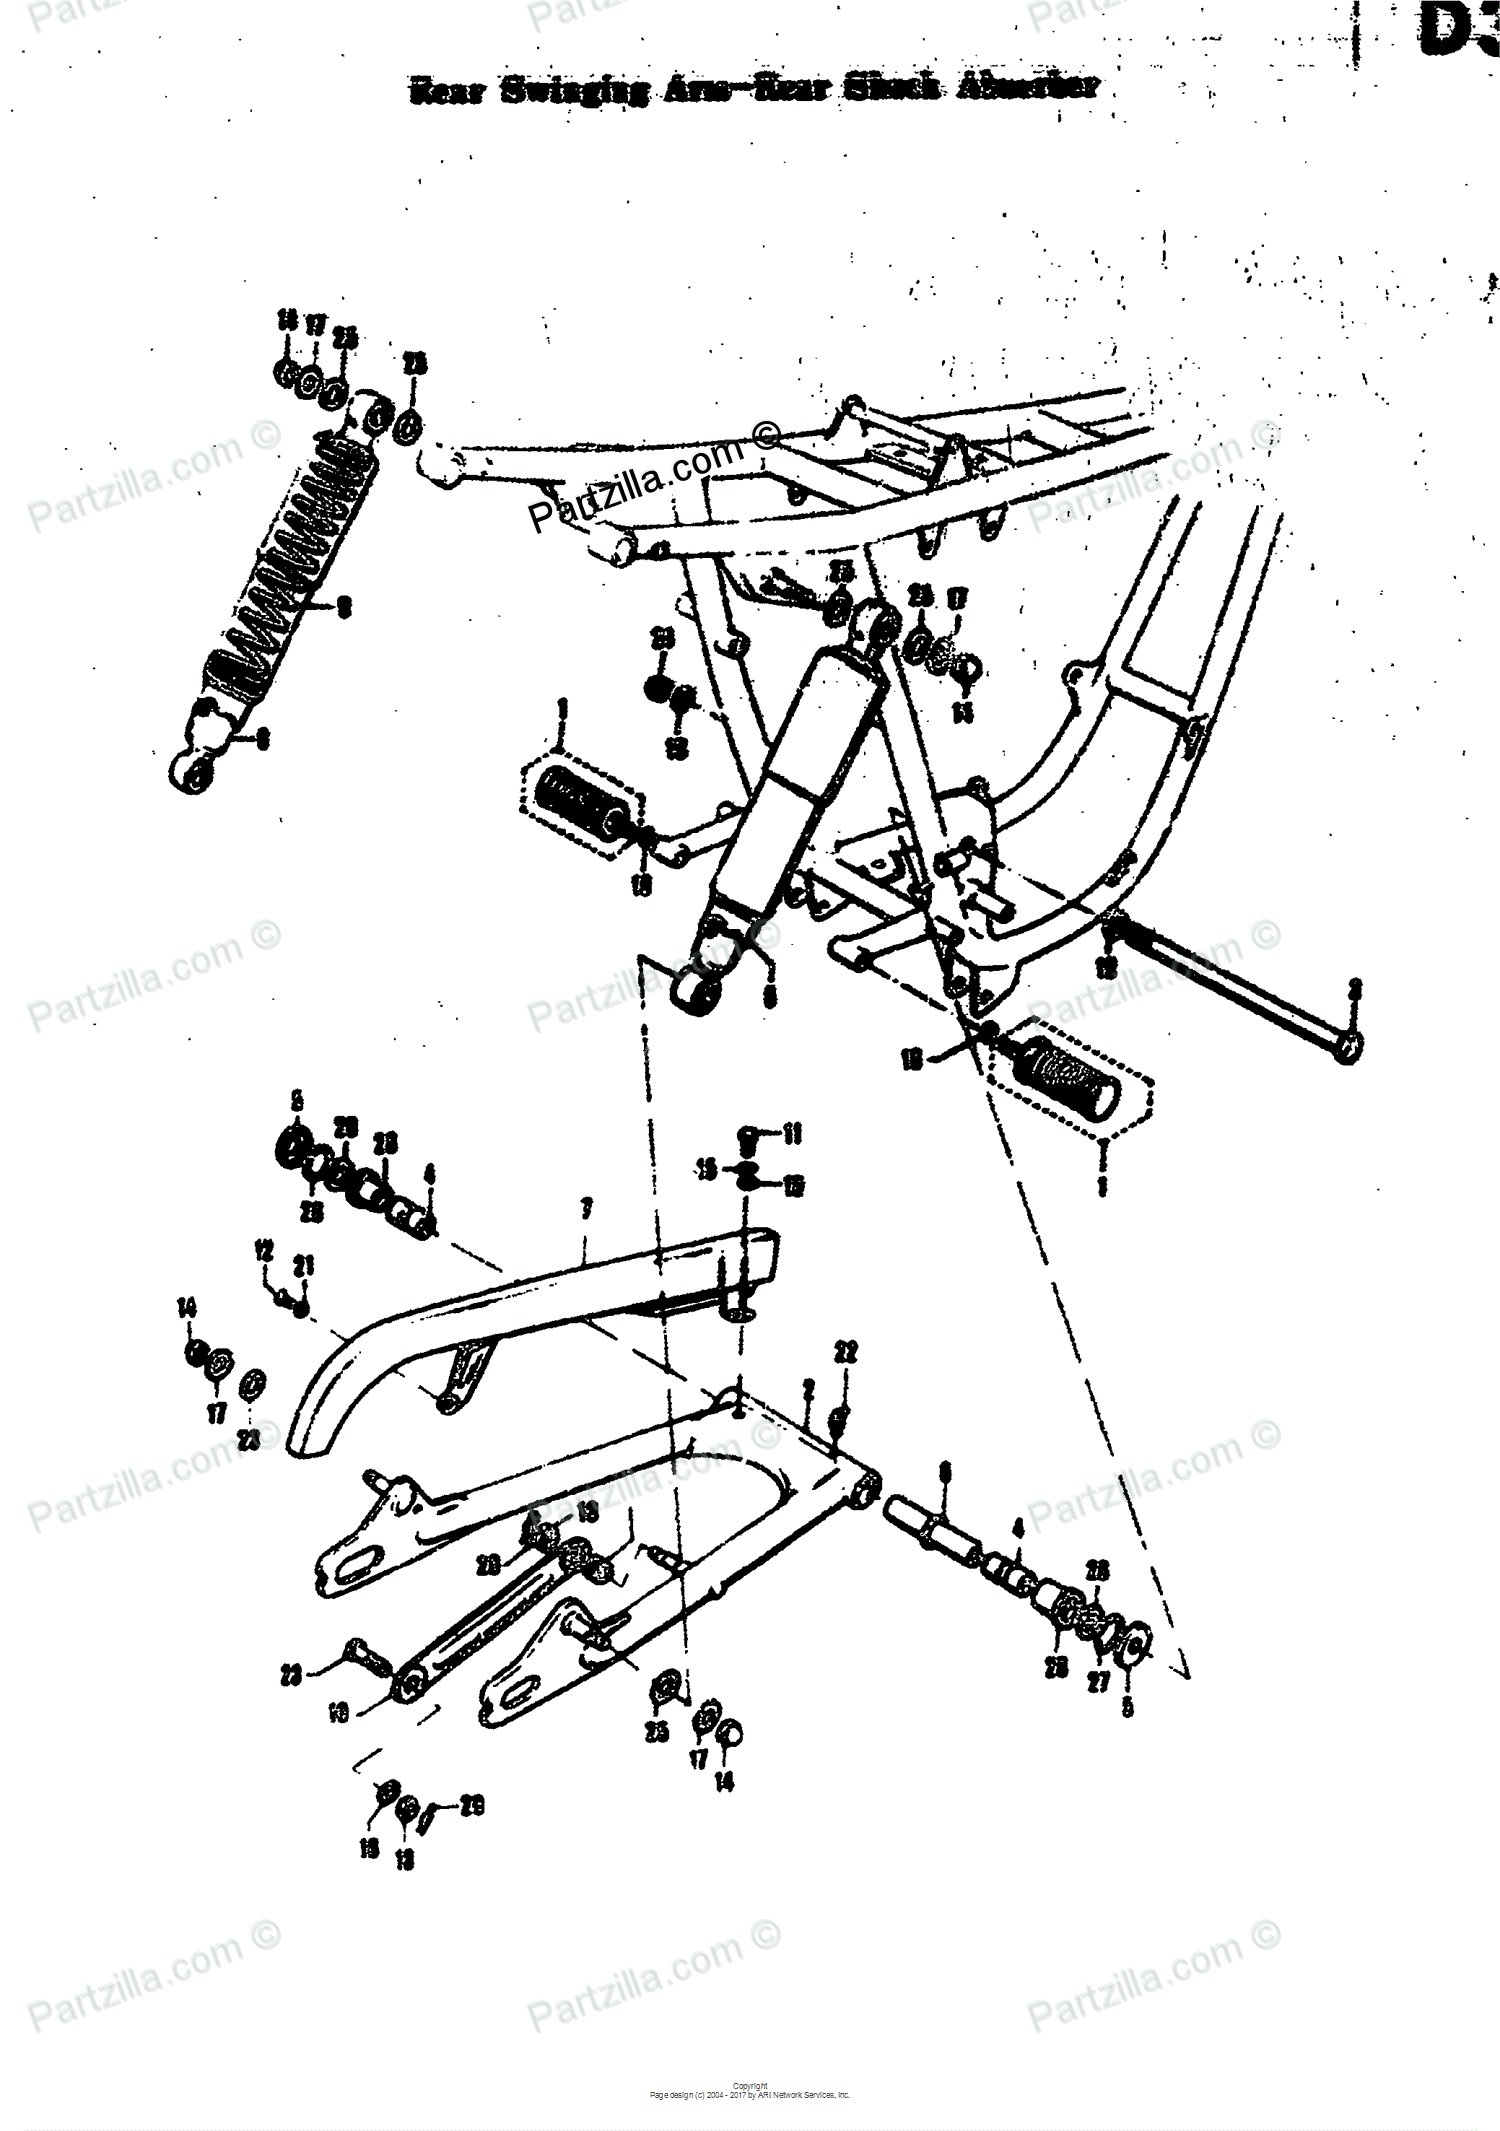 Car Shock Absorber Diagram Suzuki Motorcycle 1969 Oem Parts Diagram for Rear Swinging Arm Rear Of Car Shock Absorber Diagram